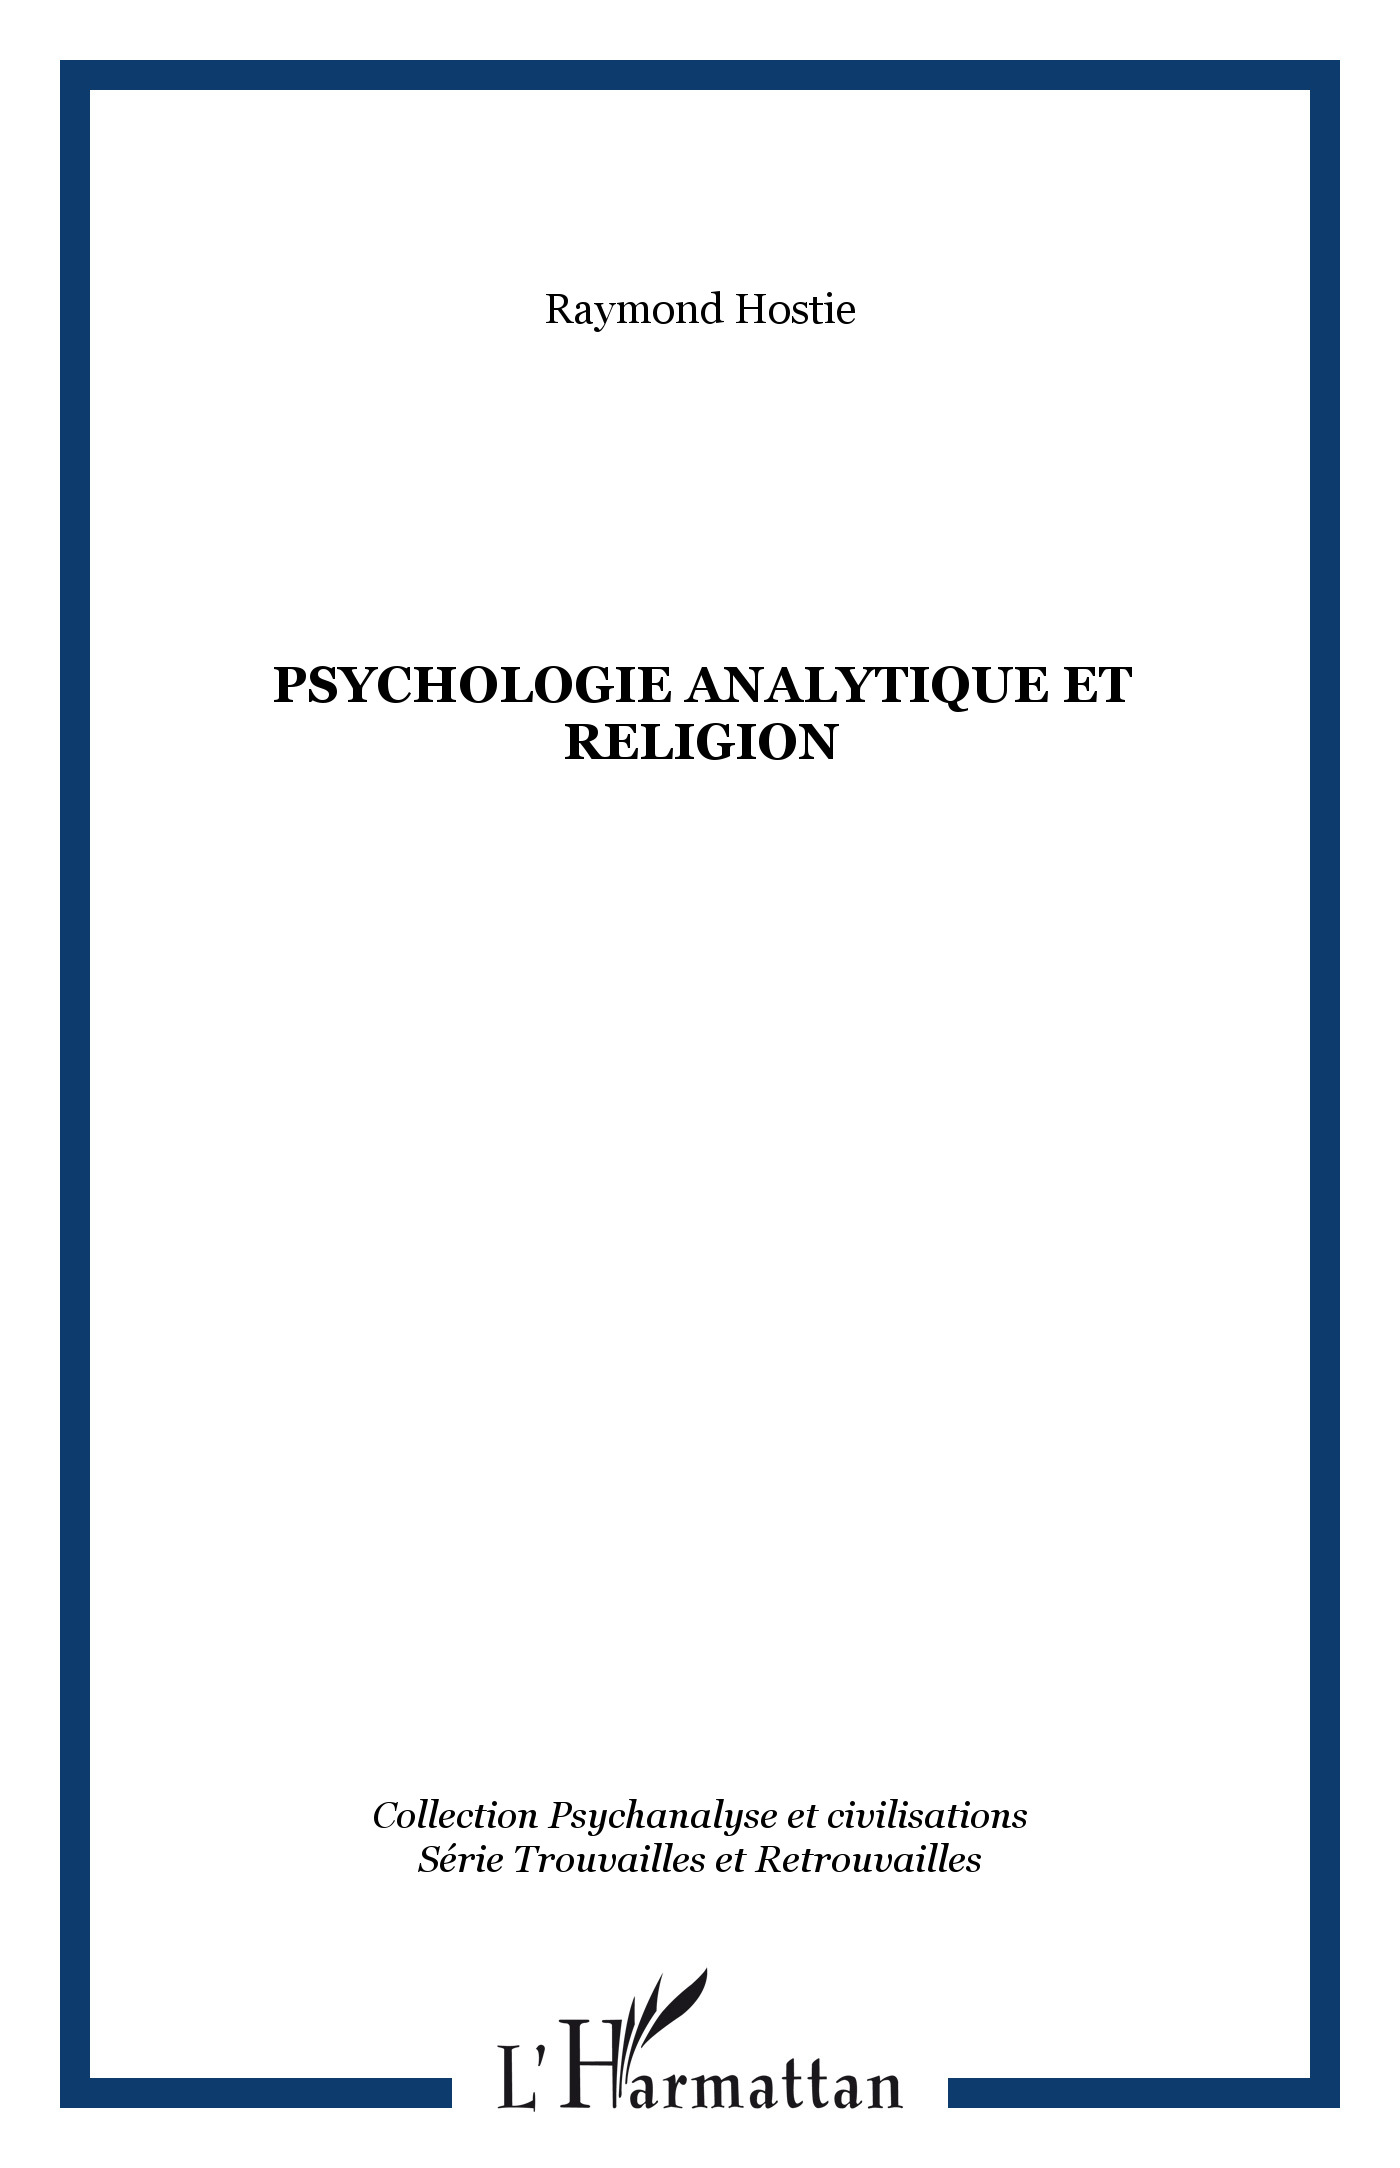 PSYCHOLOGIE ANALYTIQUE ET RELIGION